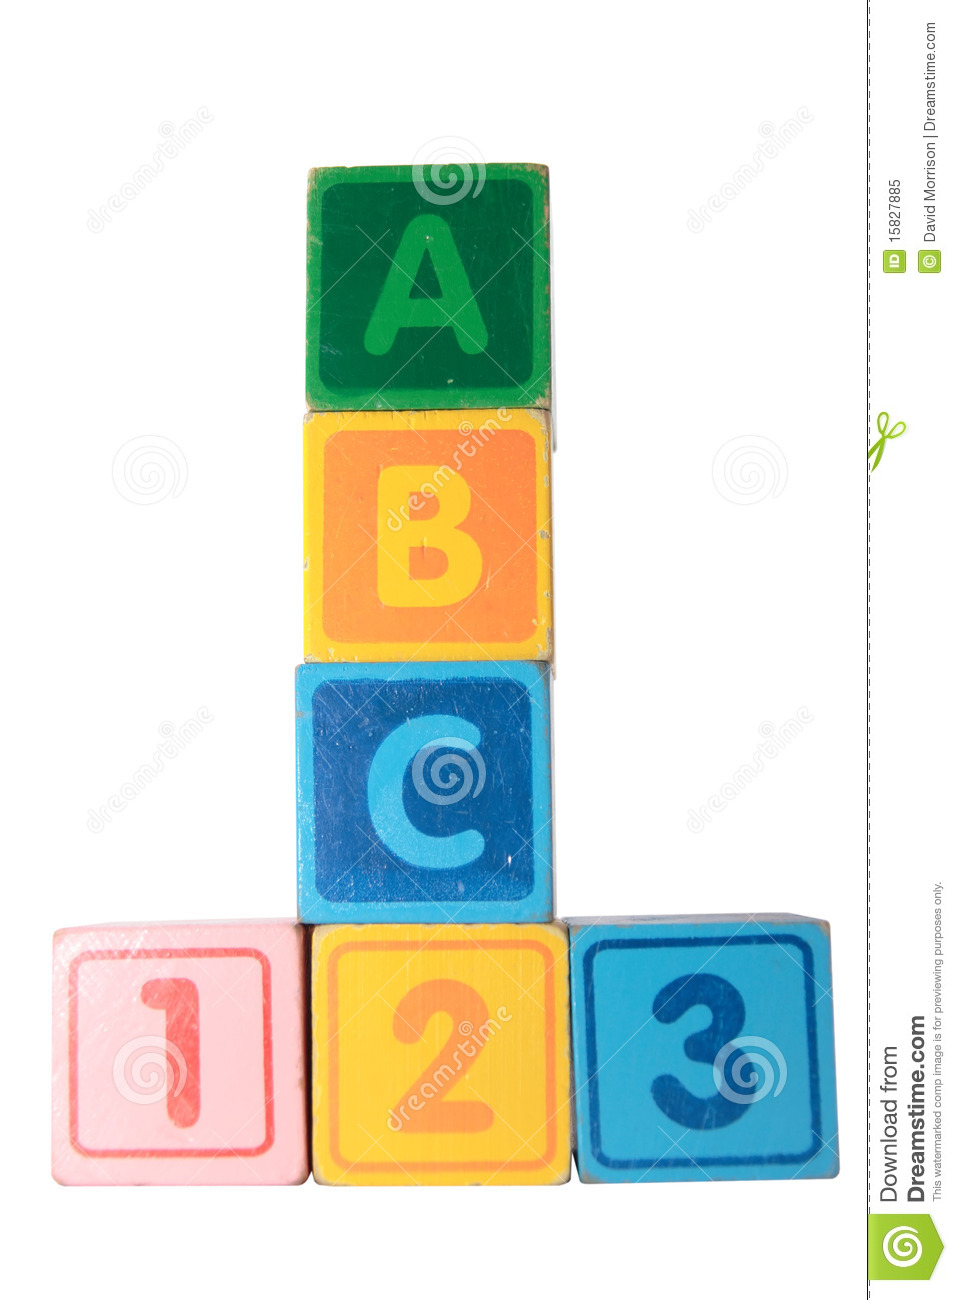 Abc 123 In Wooden Block Letters With Clipping Path Royalty ...